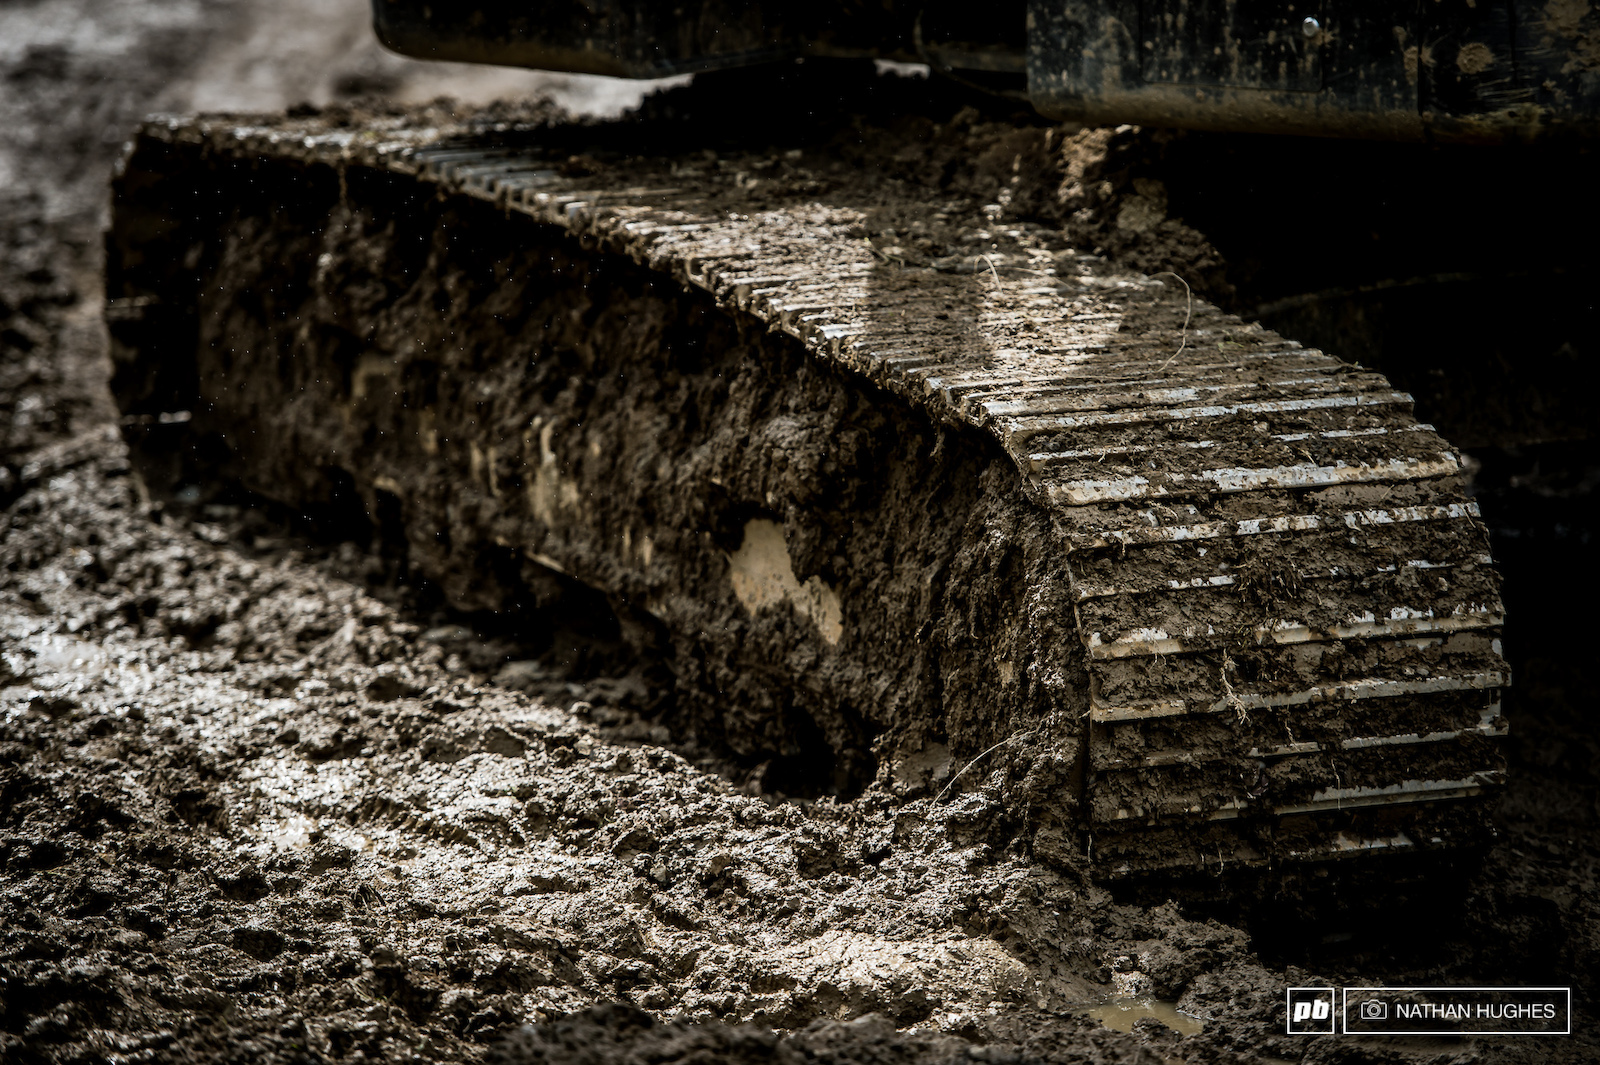 Mud. Not so glorious mud... something of a running theme out here in the French Alps this summer.